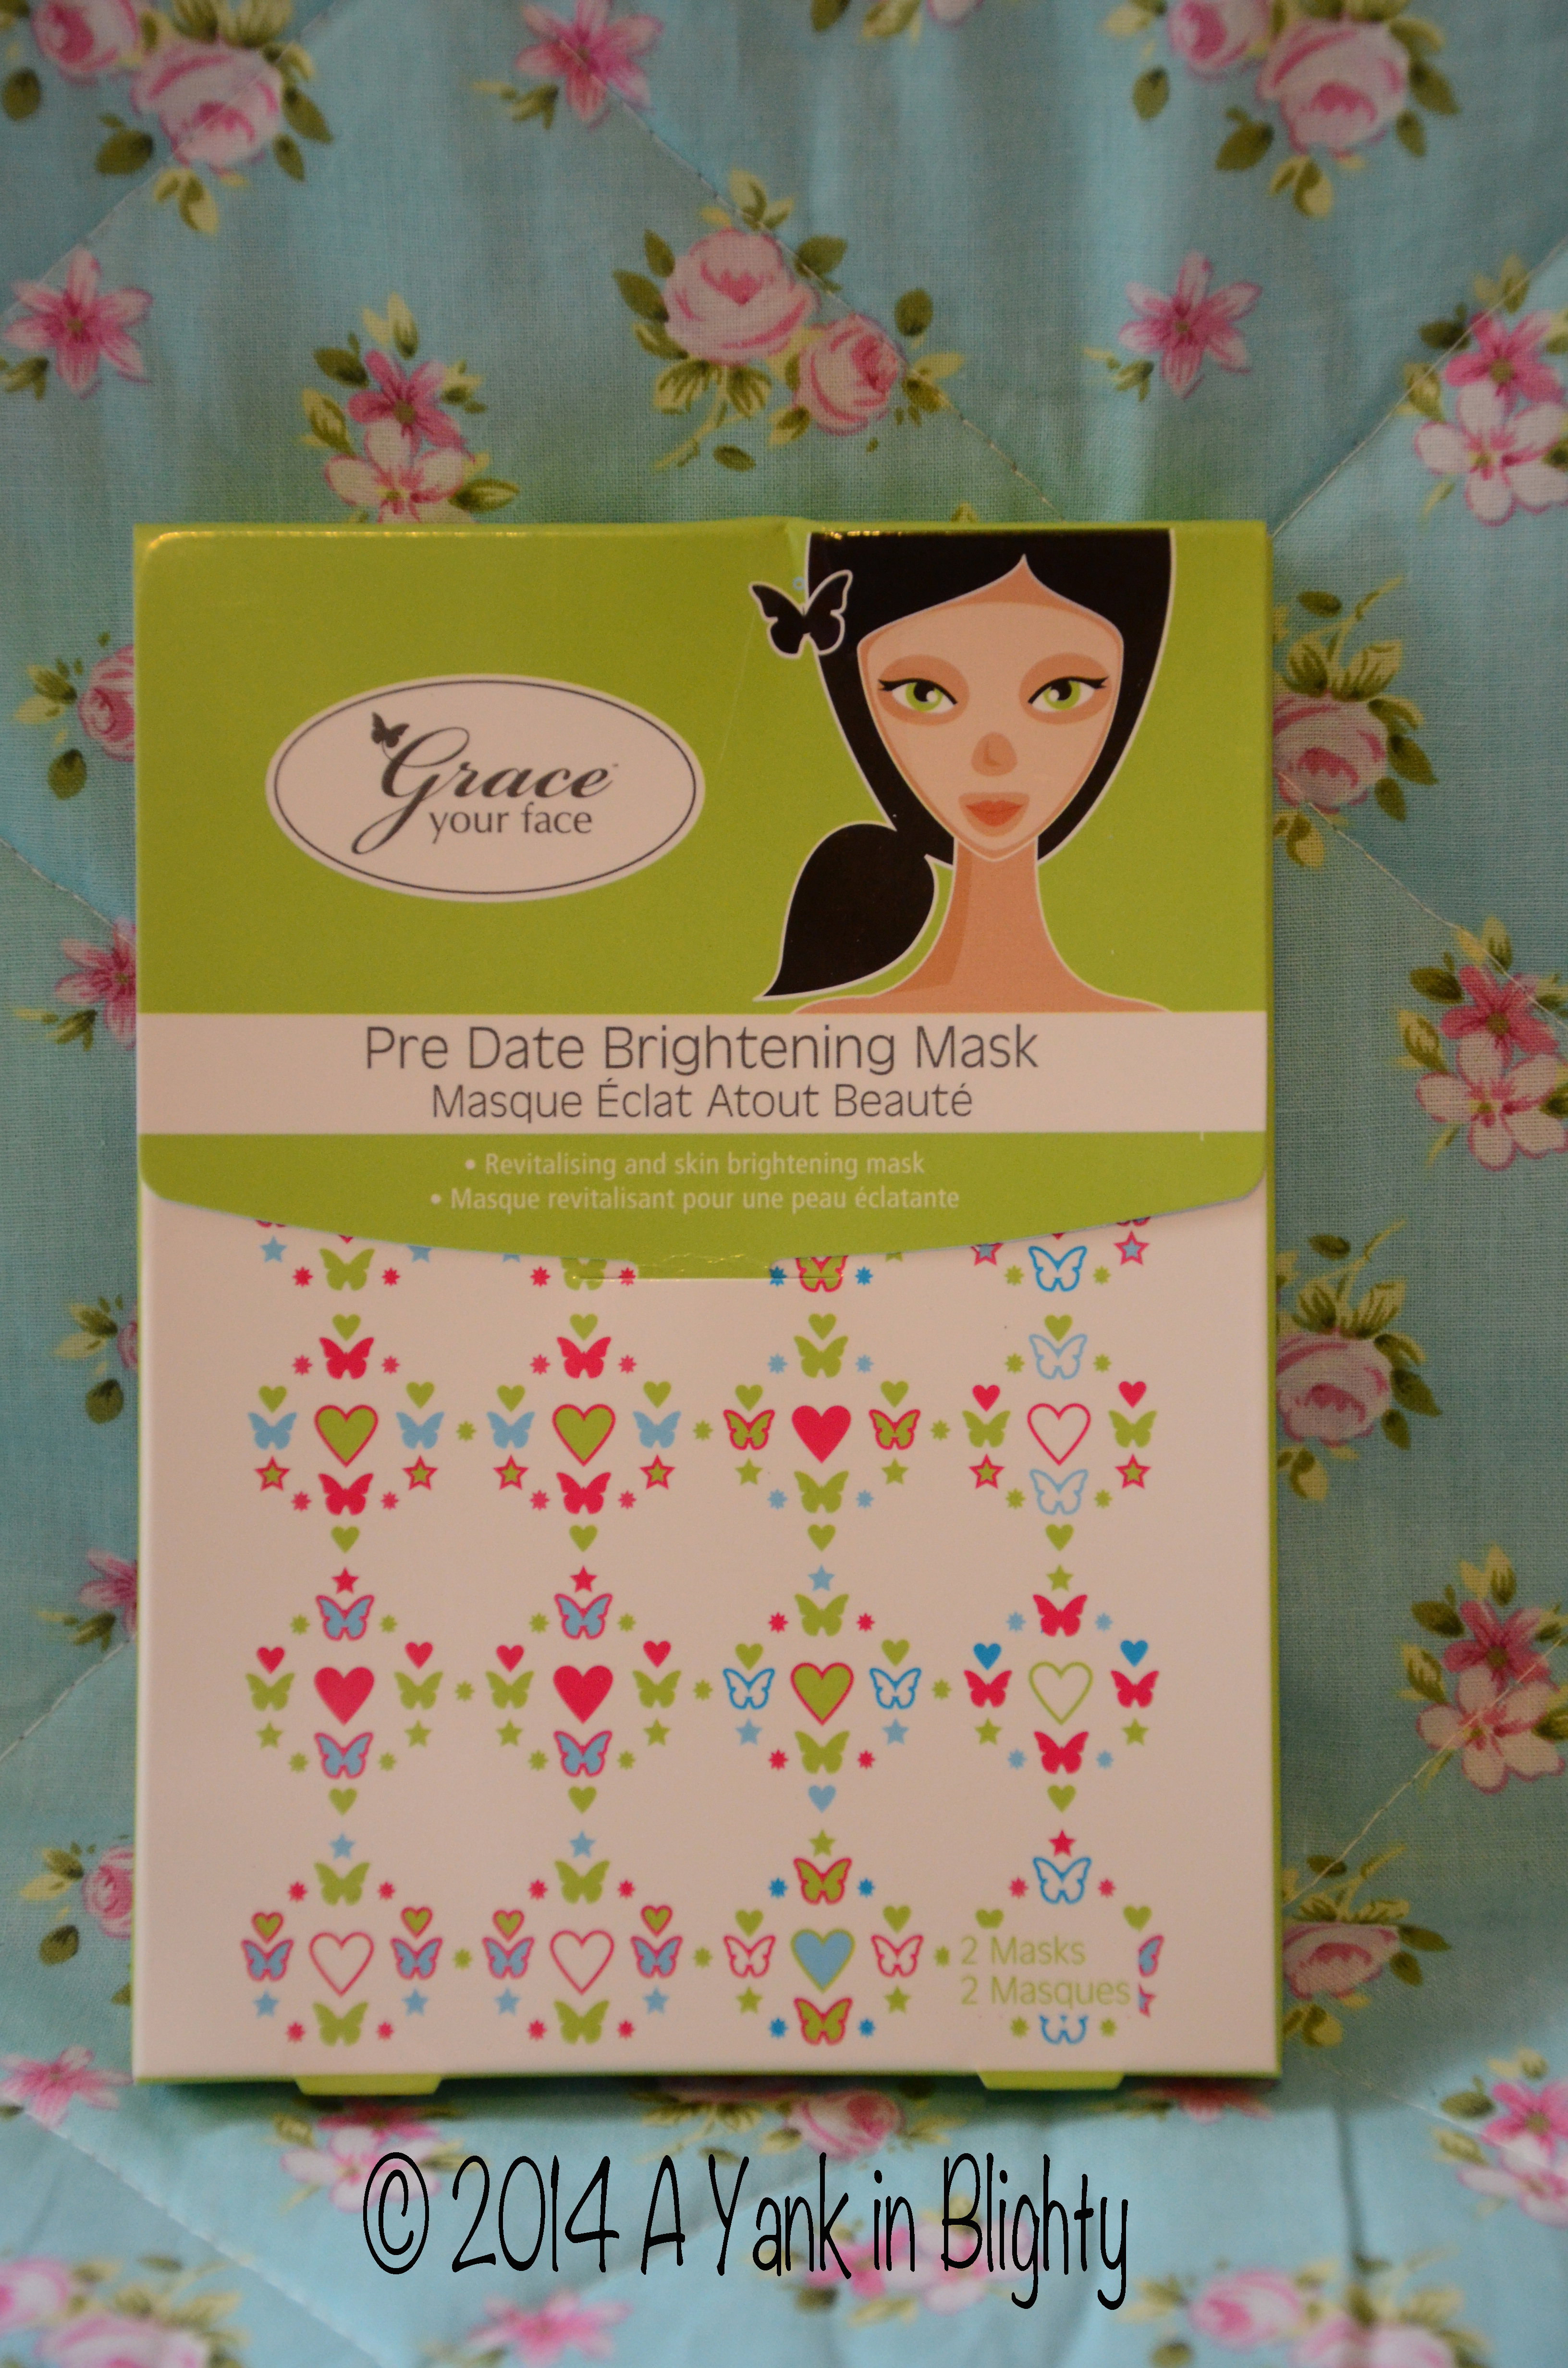 Grace Your Face Pre Date Brightening Mask